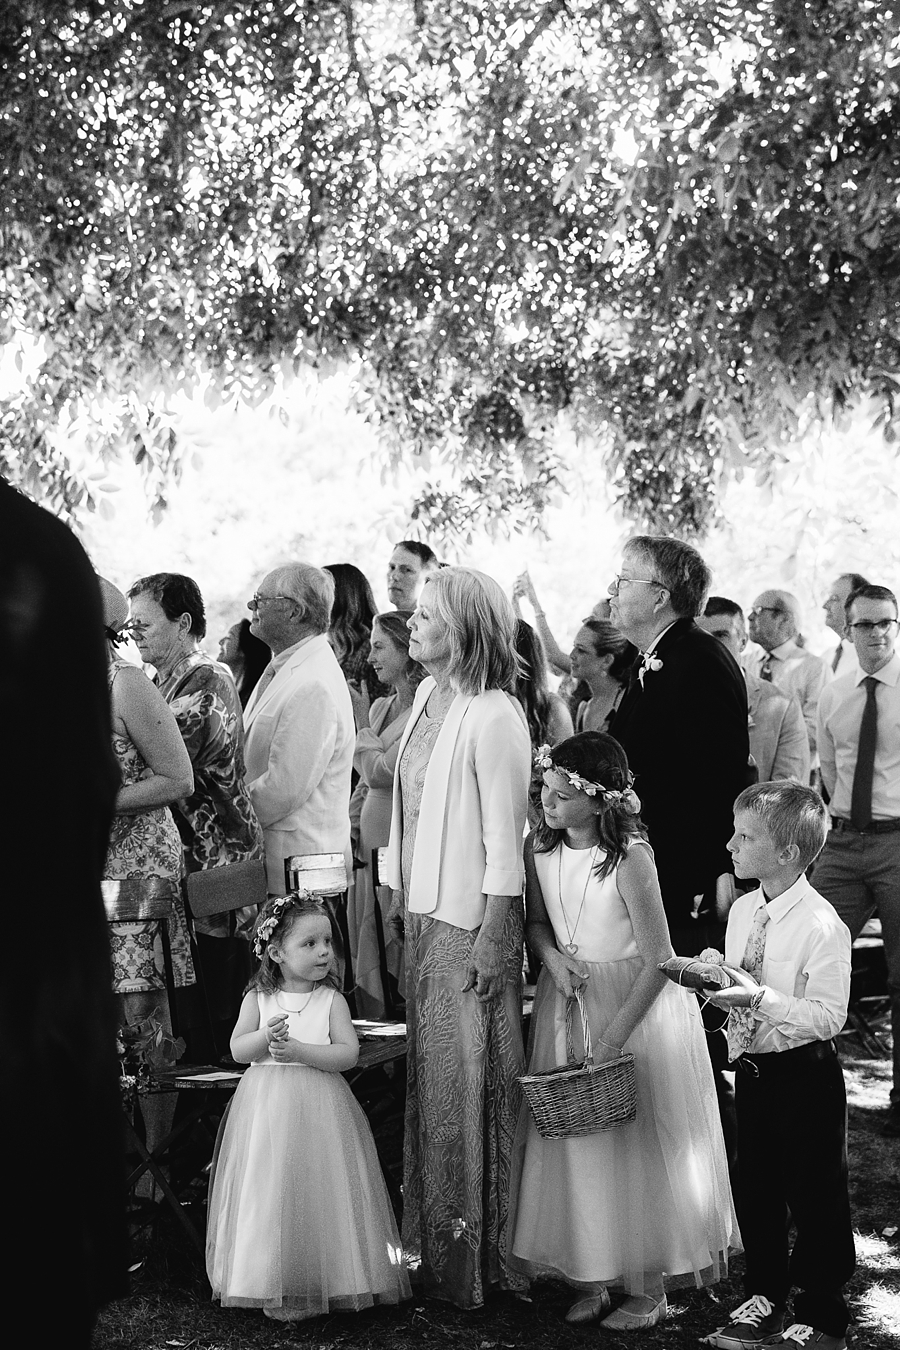 triple-s-ranch-wedding-calistoga-california-abi-q-photography-_0157.jpg